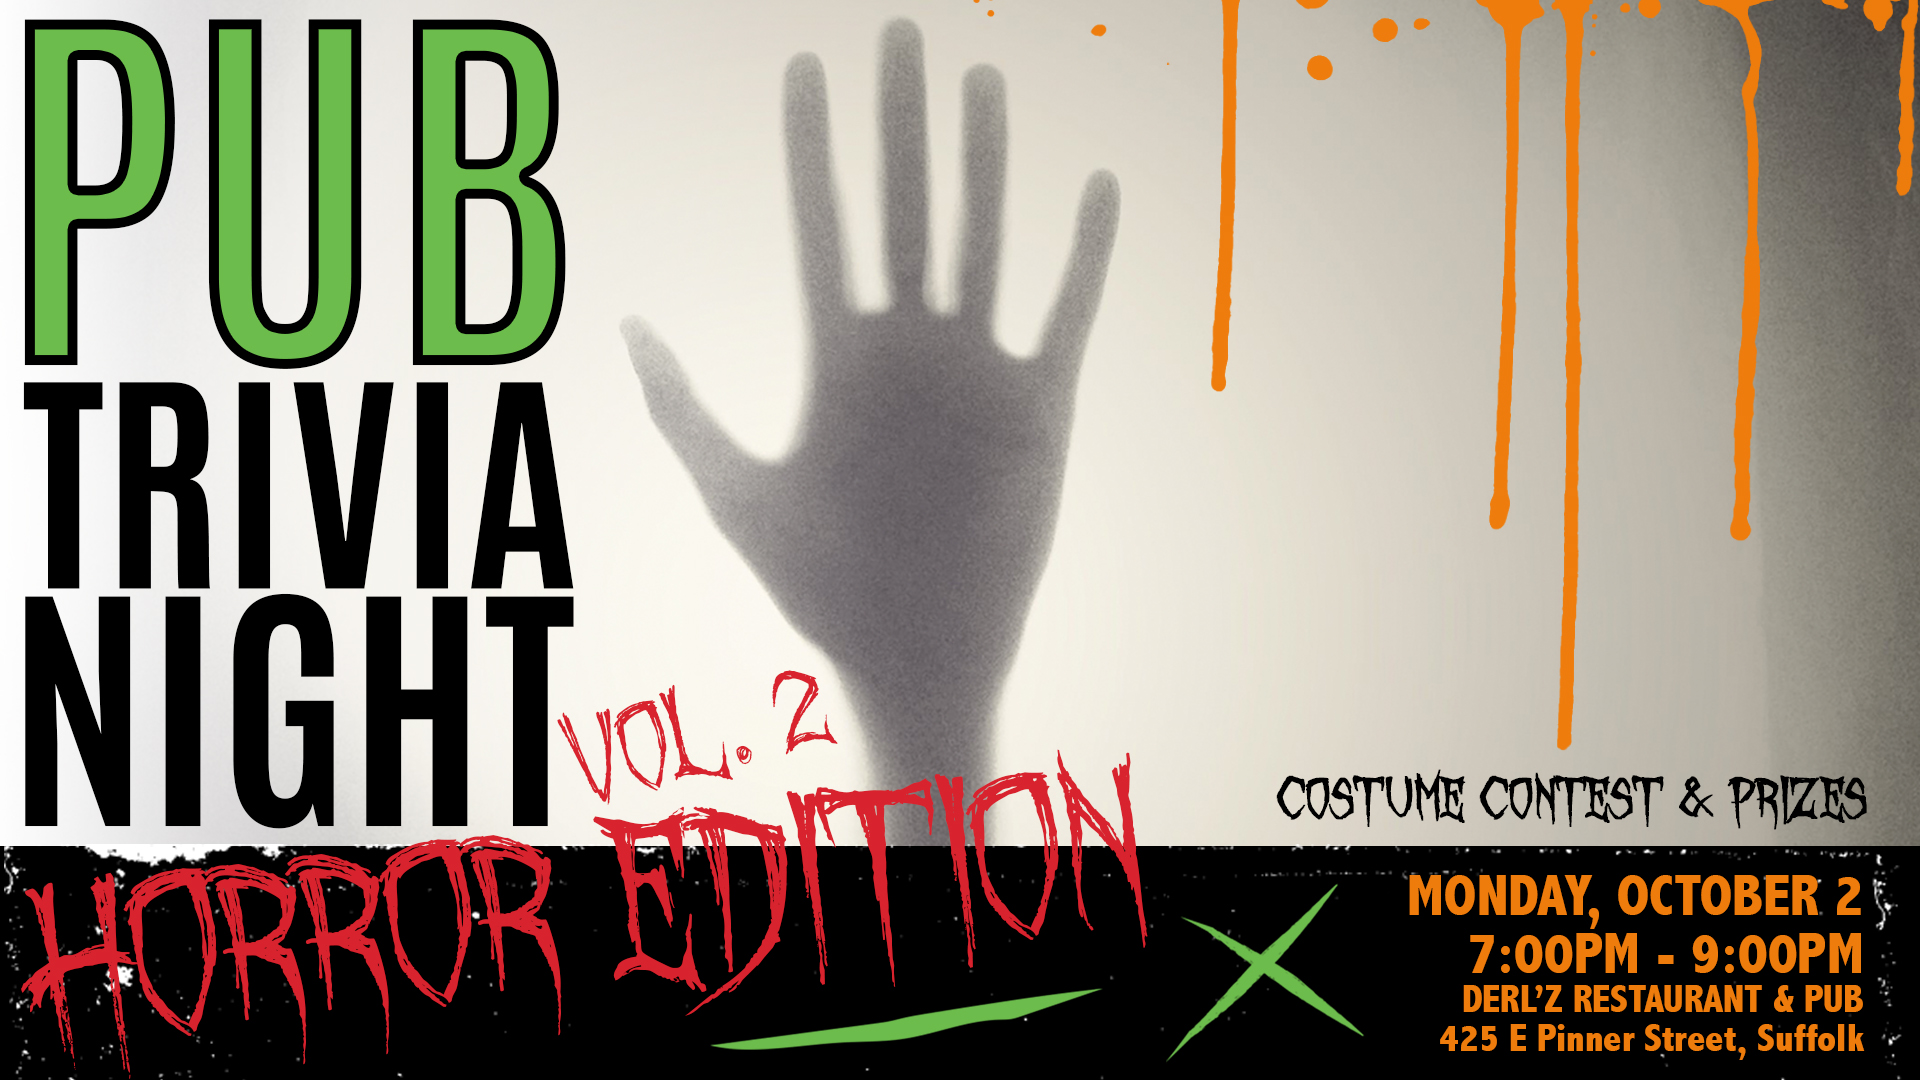 Pub Trivia Night: Volume II Horror